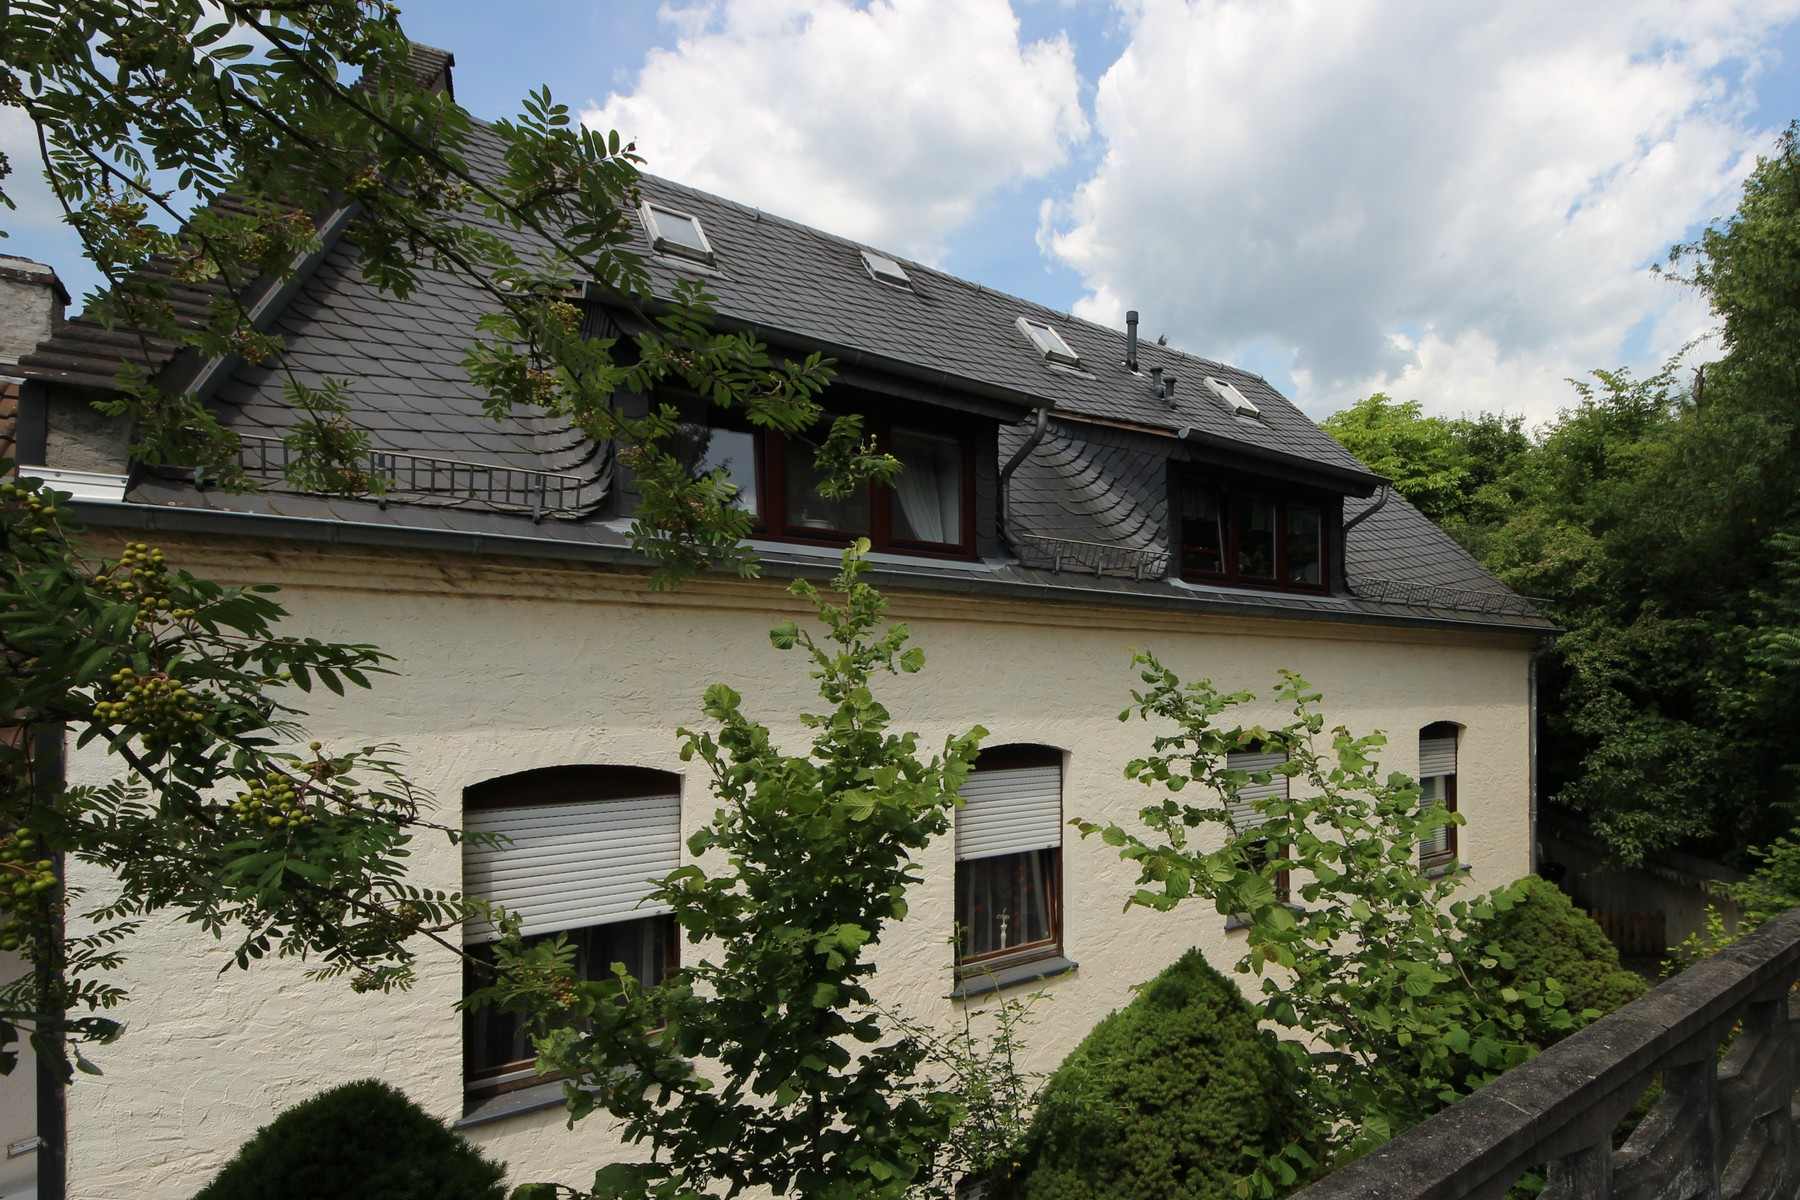 Wiesbaden: Multi-Family-Home With Single-Family-Home, Building Lot & Garden Lot